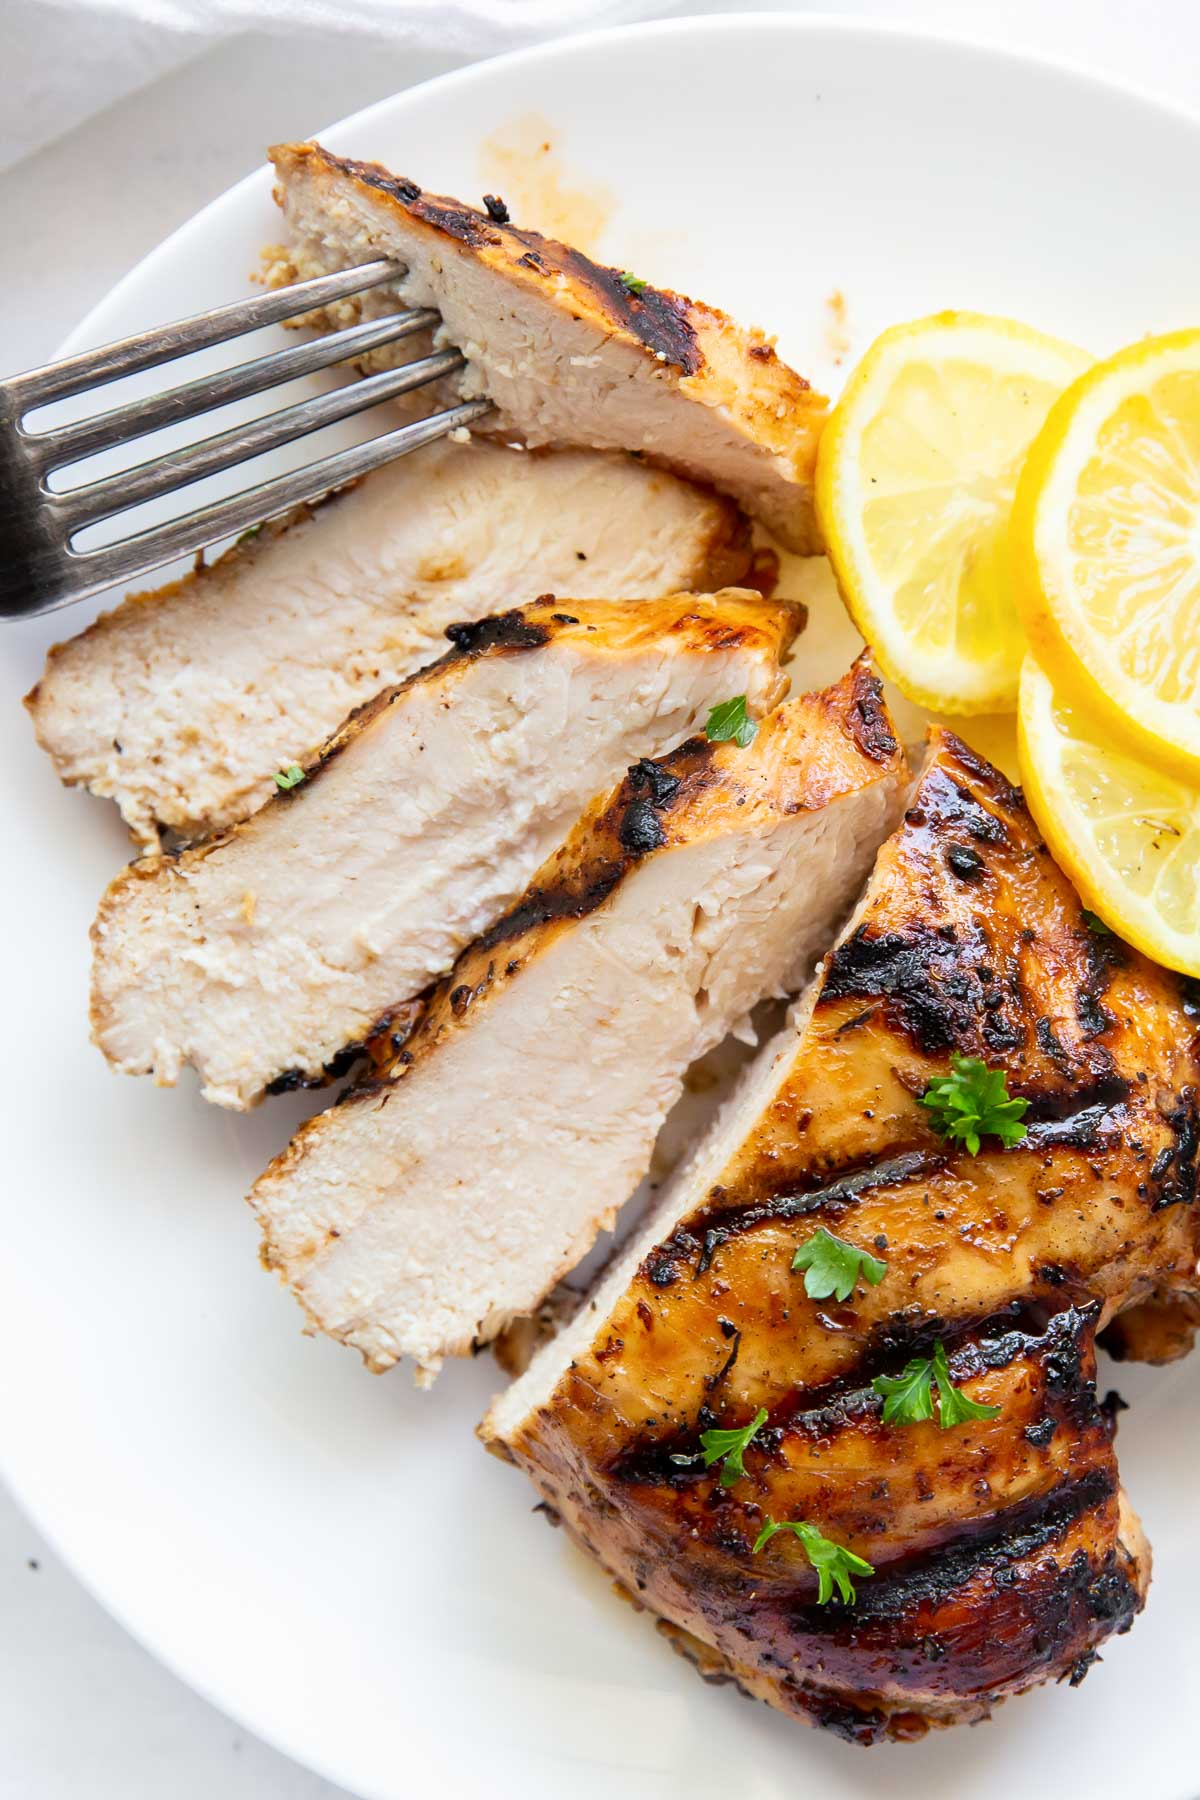 partially sliced chicken breast on a plate with a fork and lemon slices